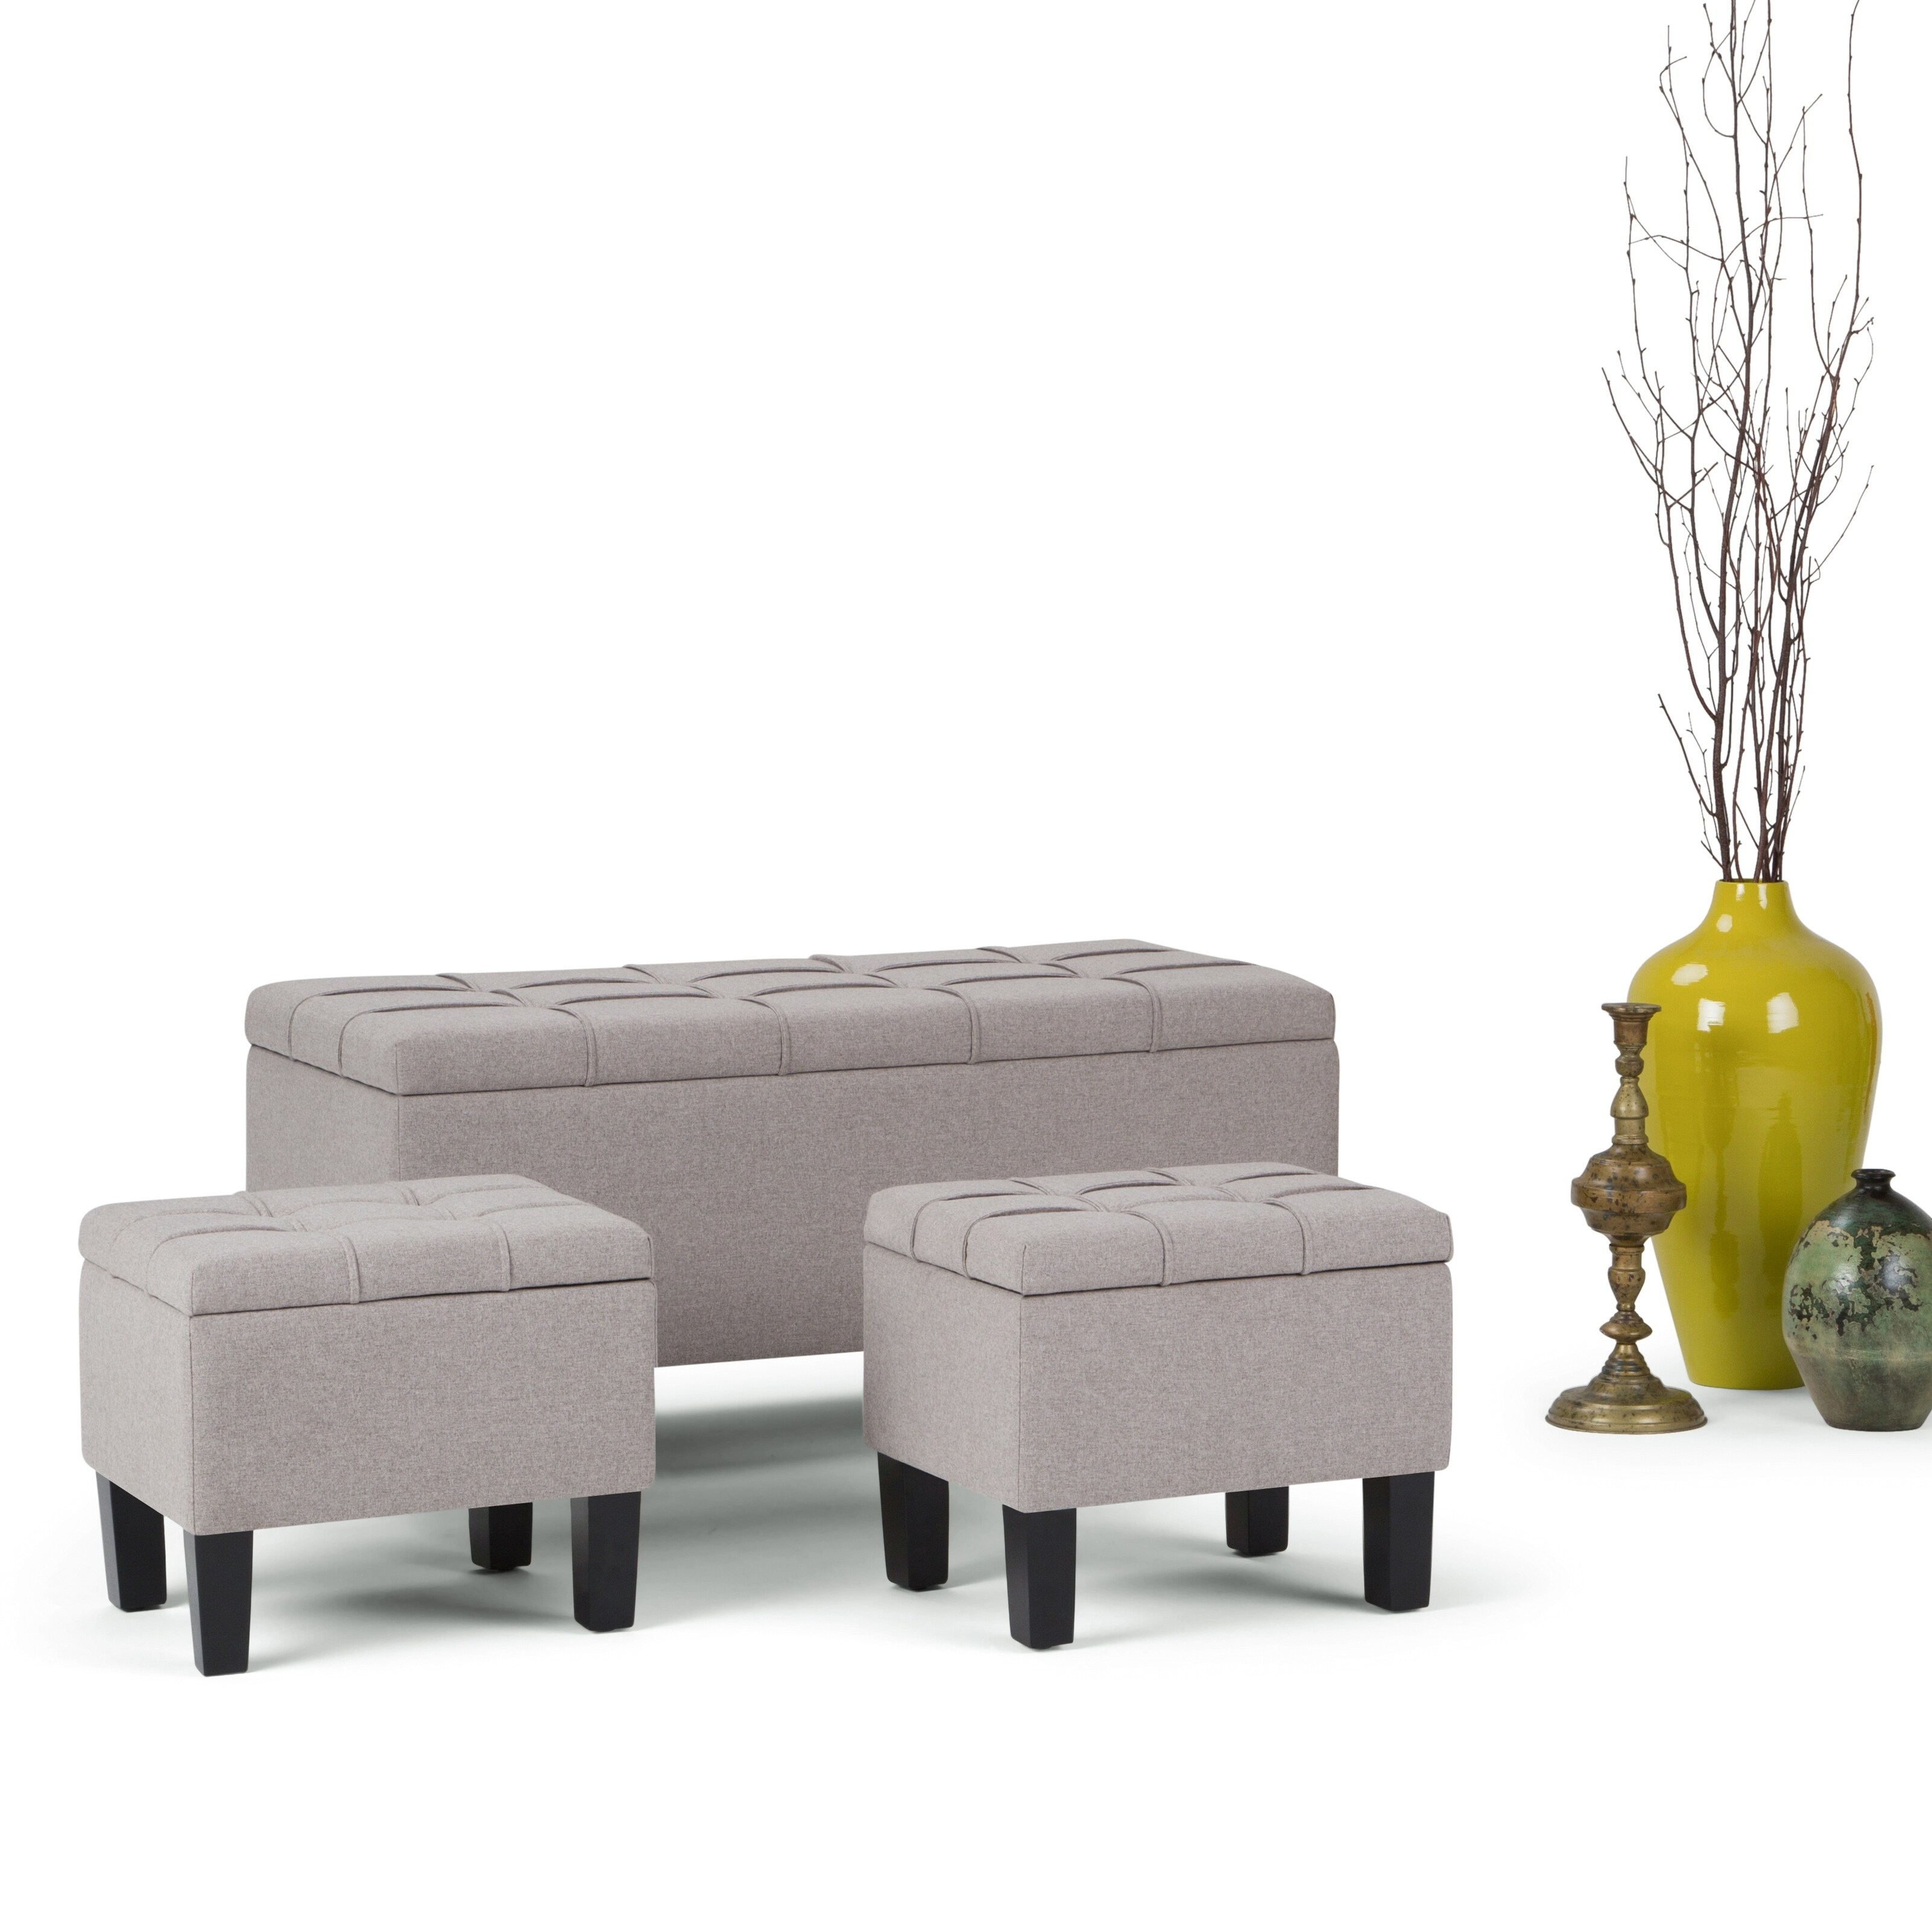 Remarkable Wyndenhall Lancaster 3 Piece Storage Ottoman Set Set Of 3 Gmtry Best Dining Table And Chair Ideas Images Gmtryco